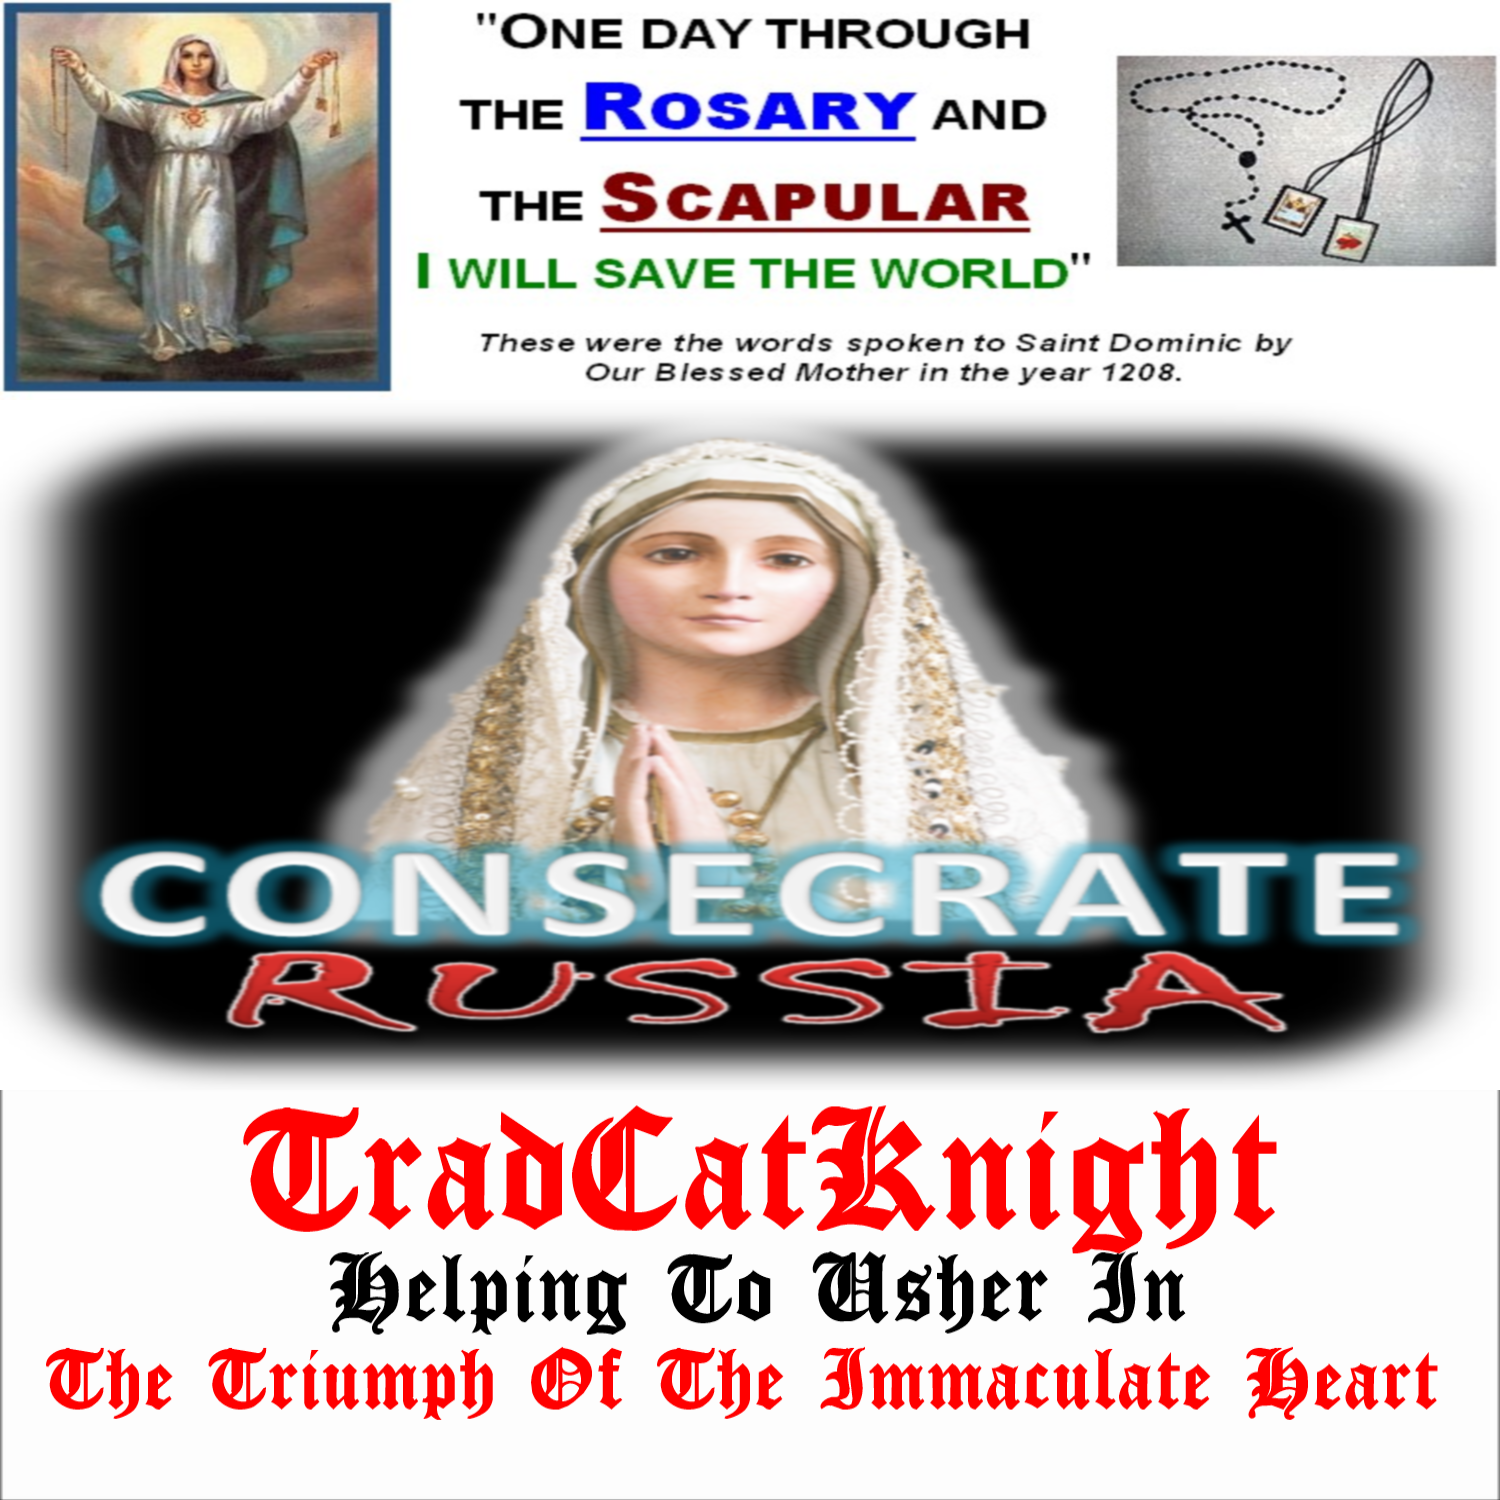 tradcatknight #fatima in the end, my immaculate heart will triumph